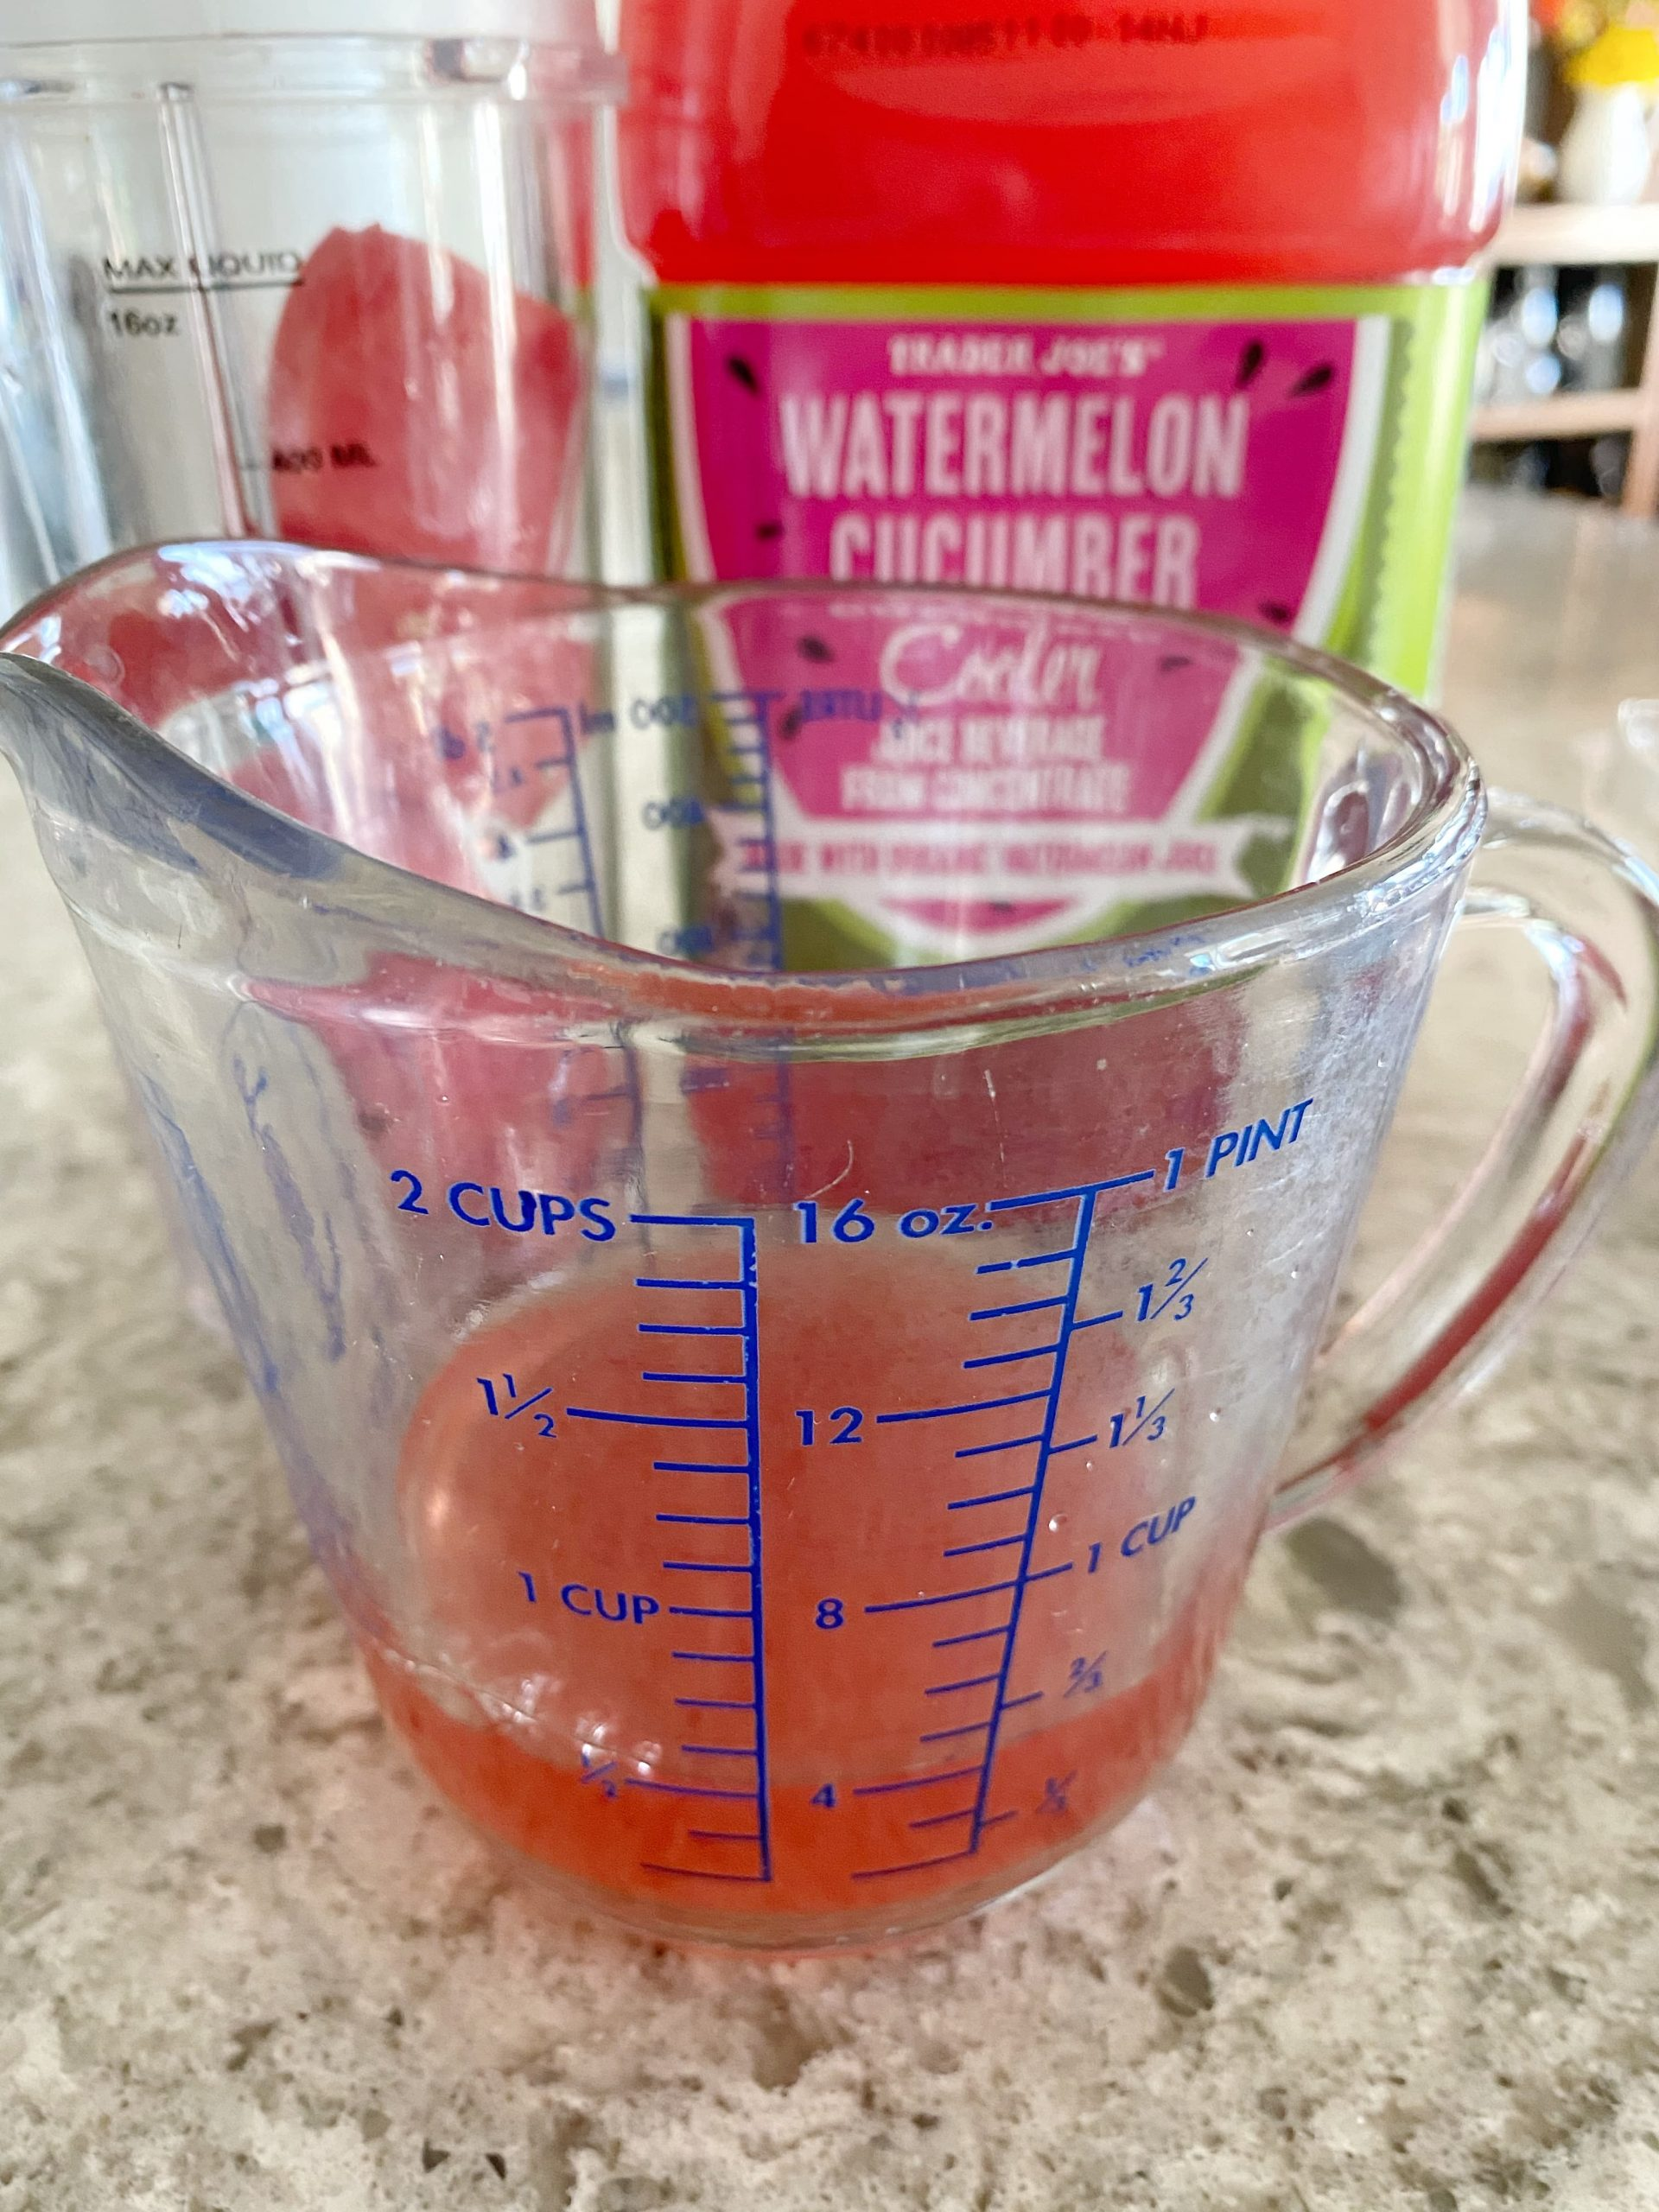 Trader Joe's watermelon cucumber juice